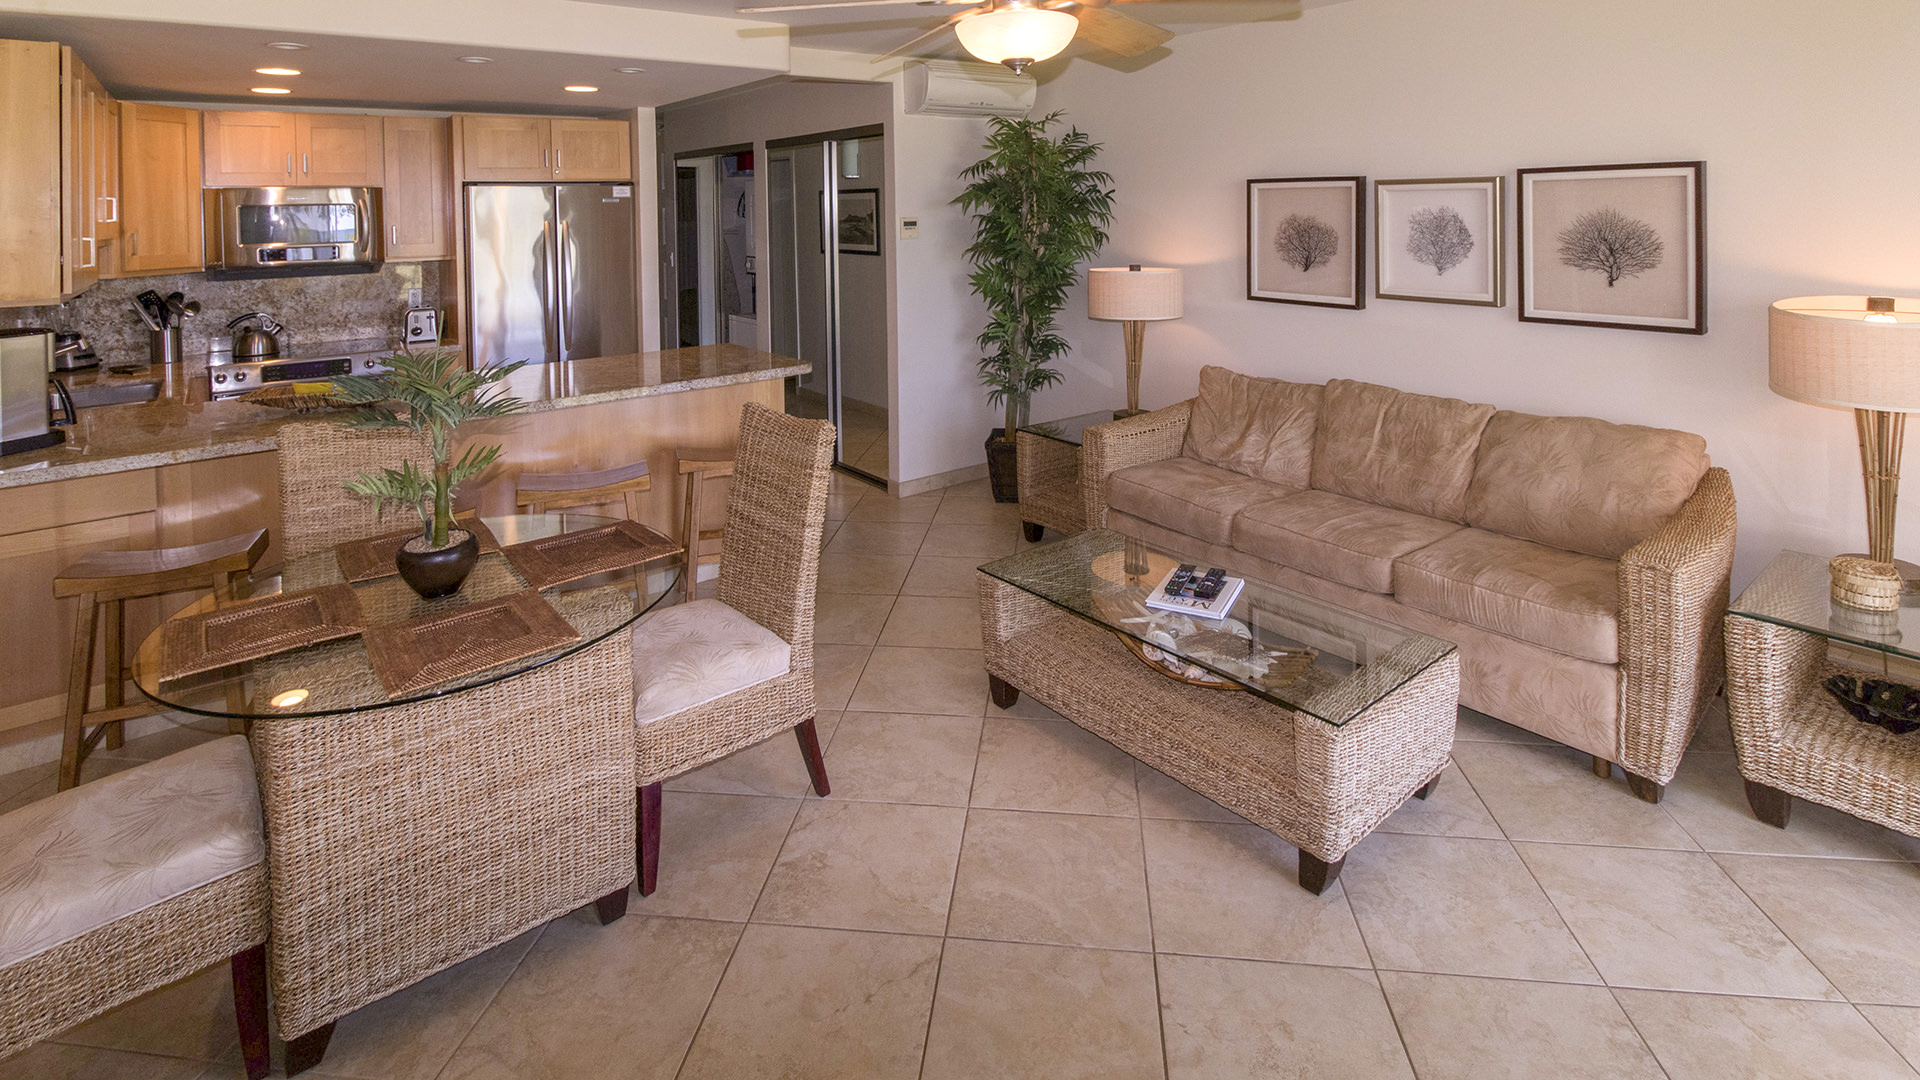 A105 Dining, Kitchen, Couch Setting